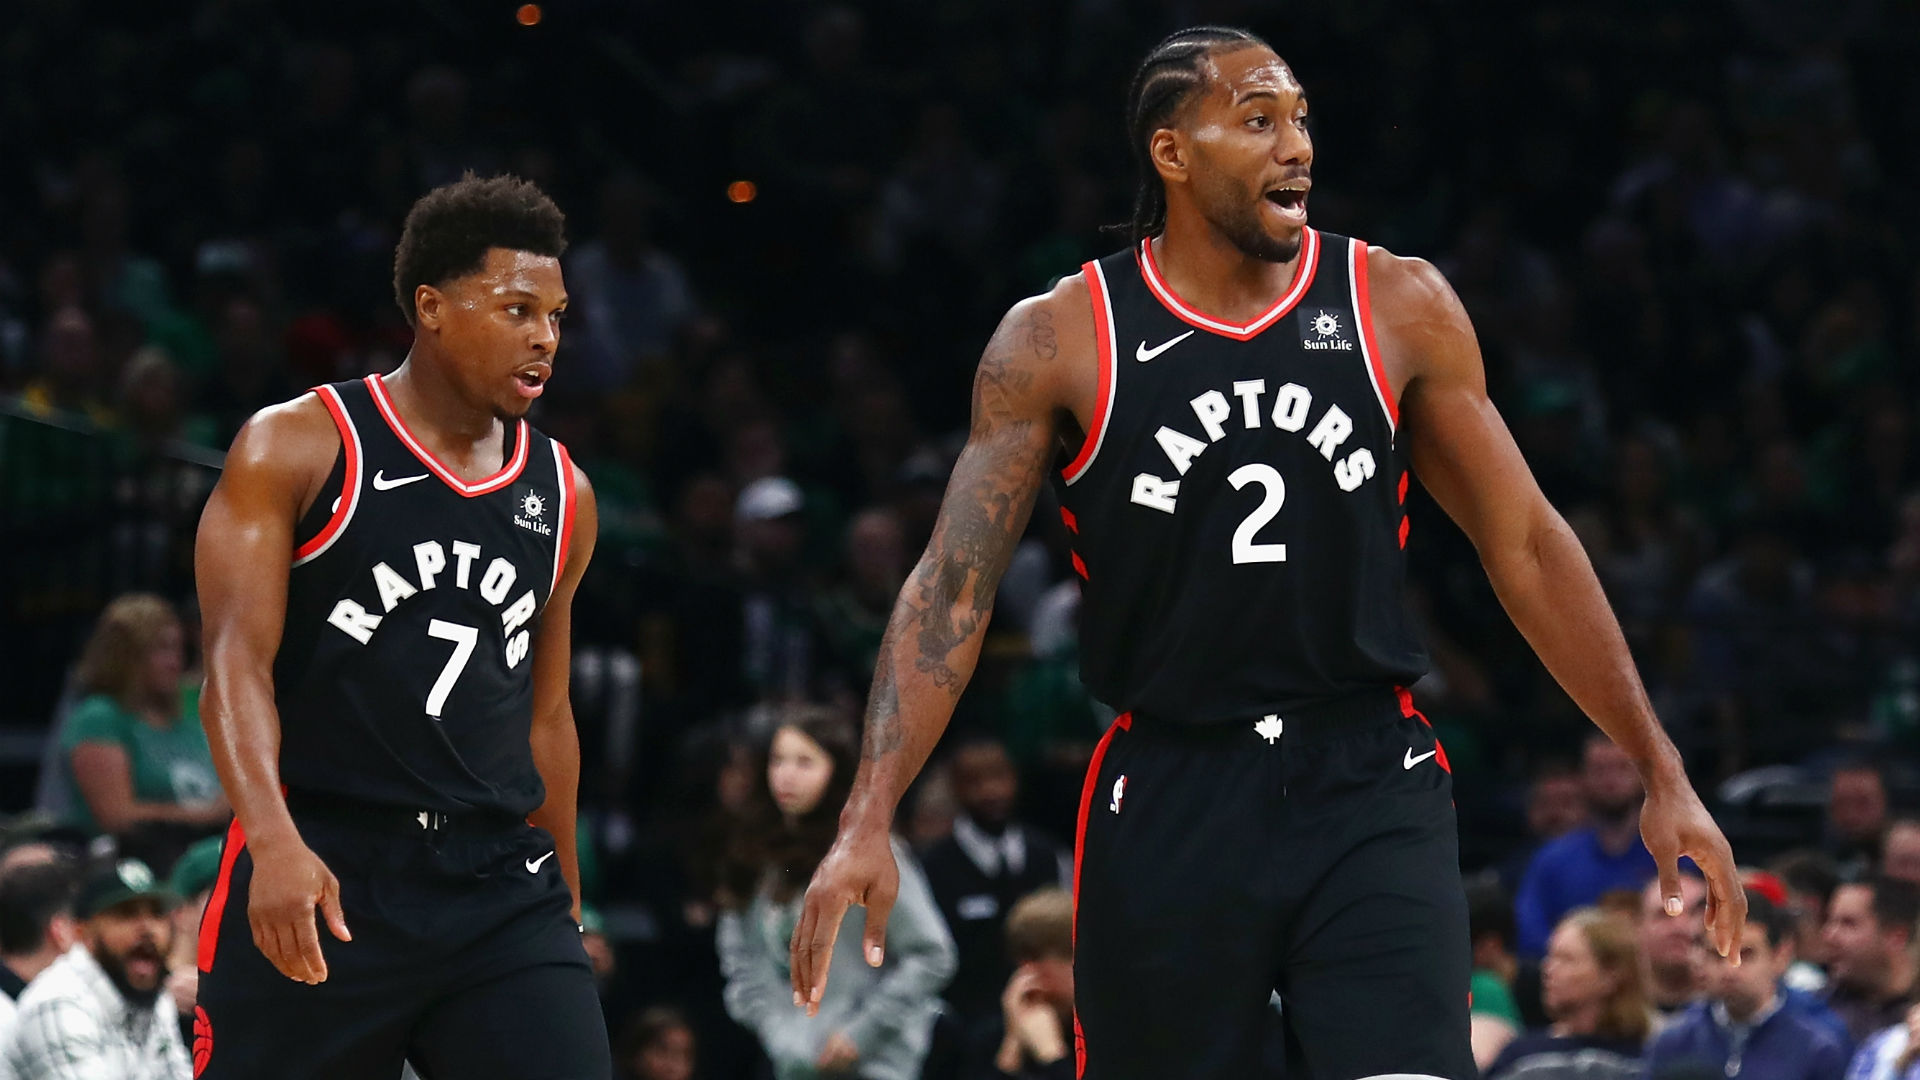 NBA trade deal Kawhi Leonard Kevin Durant Jimmy Butler Miami Heat Kyrie Irving free agent